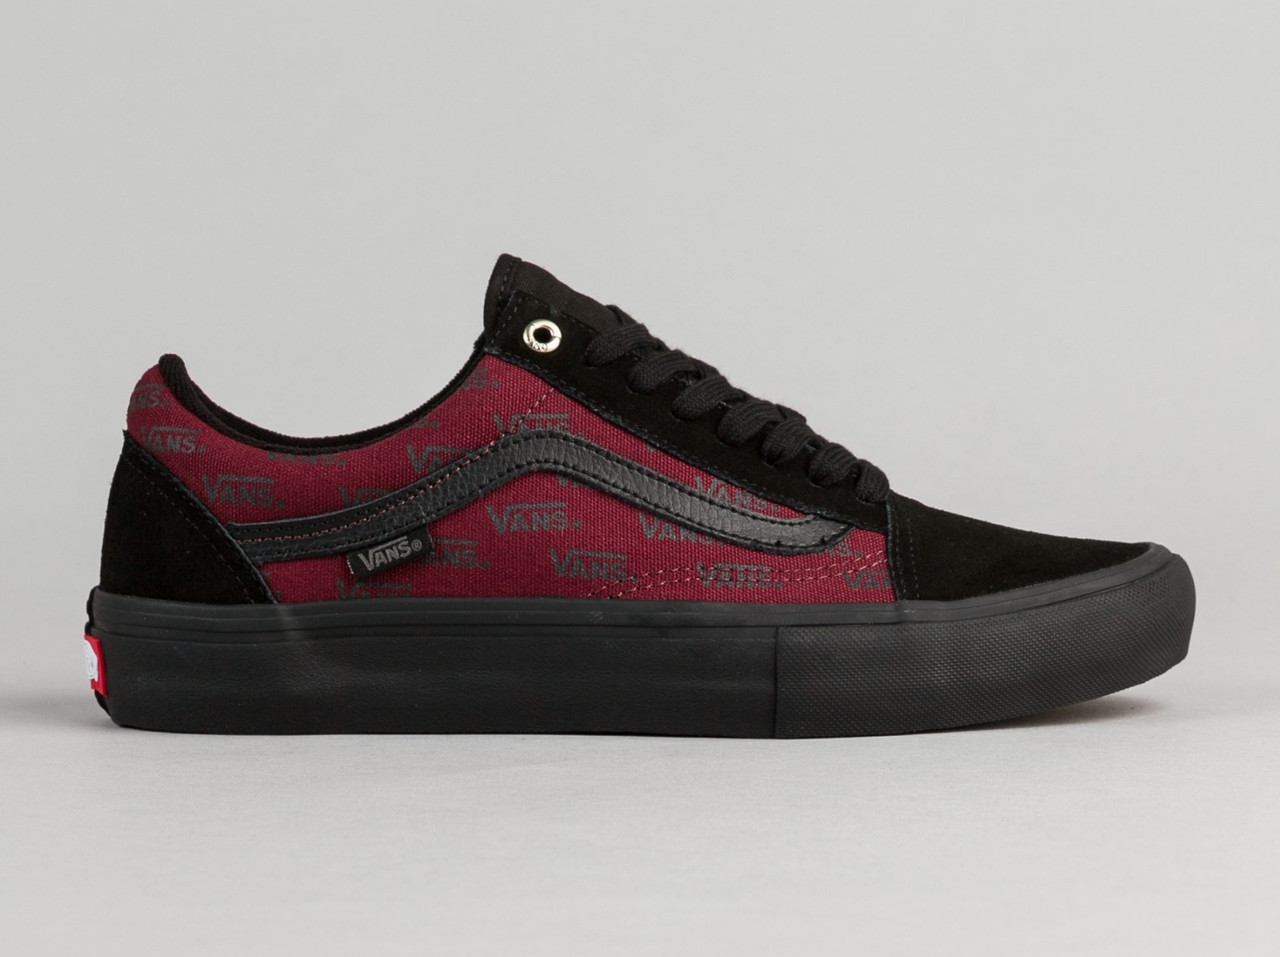 Кеды Мужские Vans Old Skool PRO Black Bordo Бордовые Топ Реплика — в ... c71c6f152a323